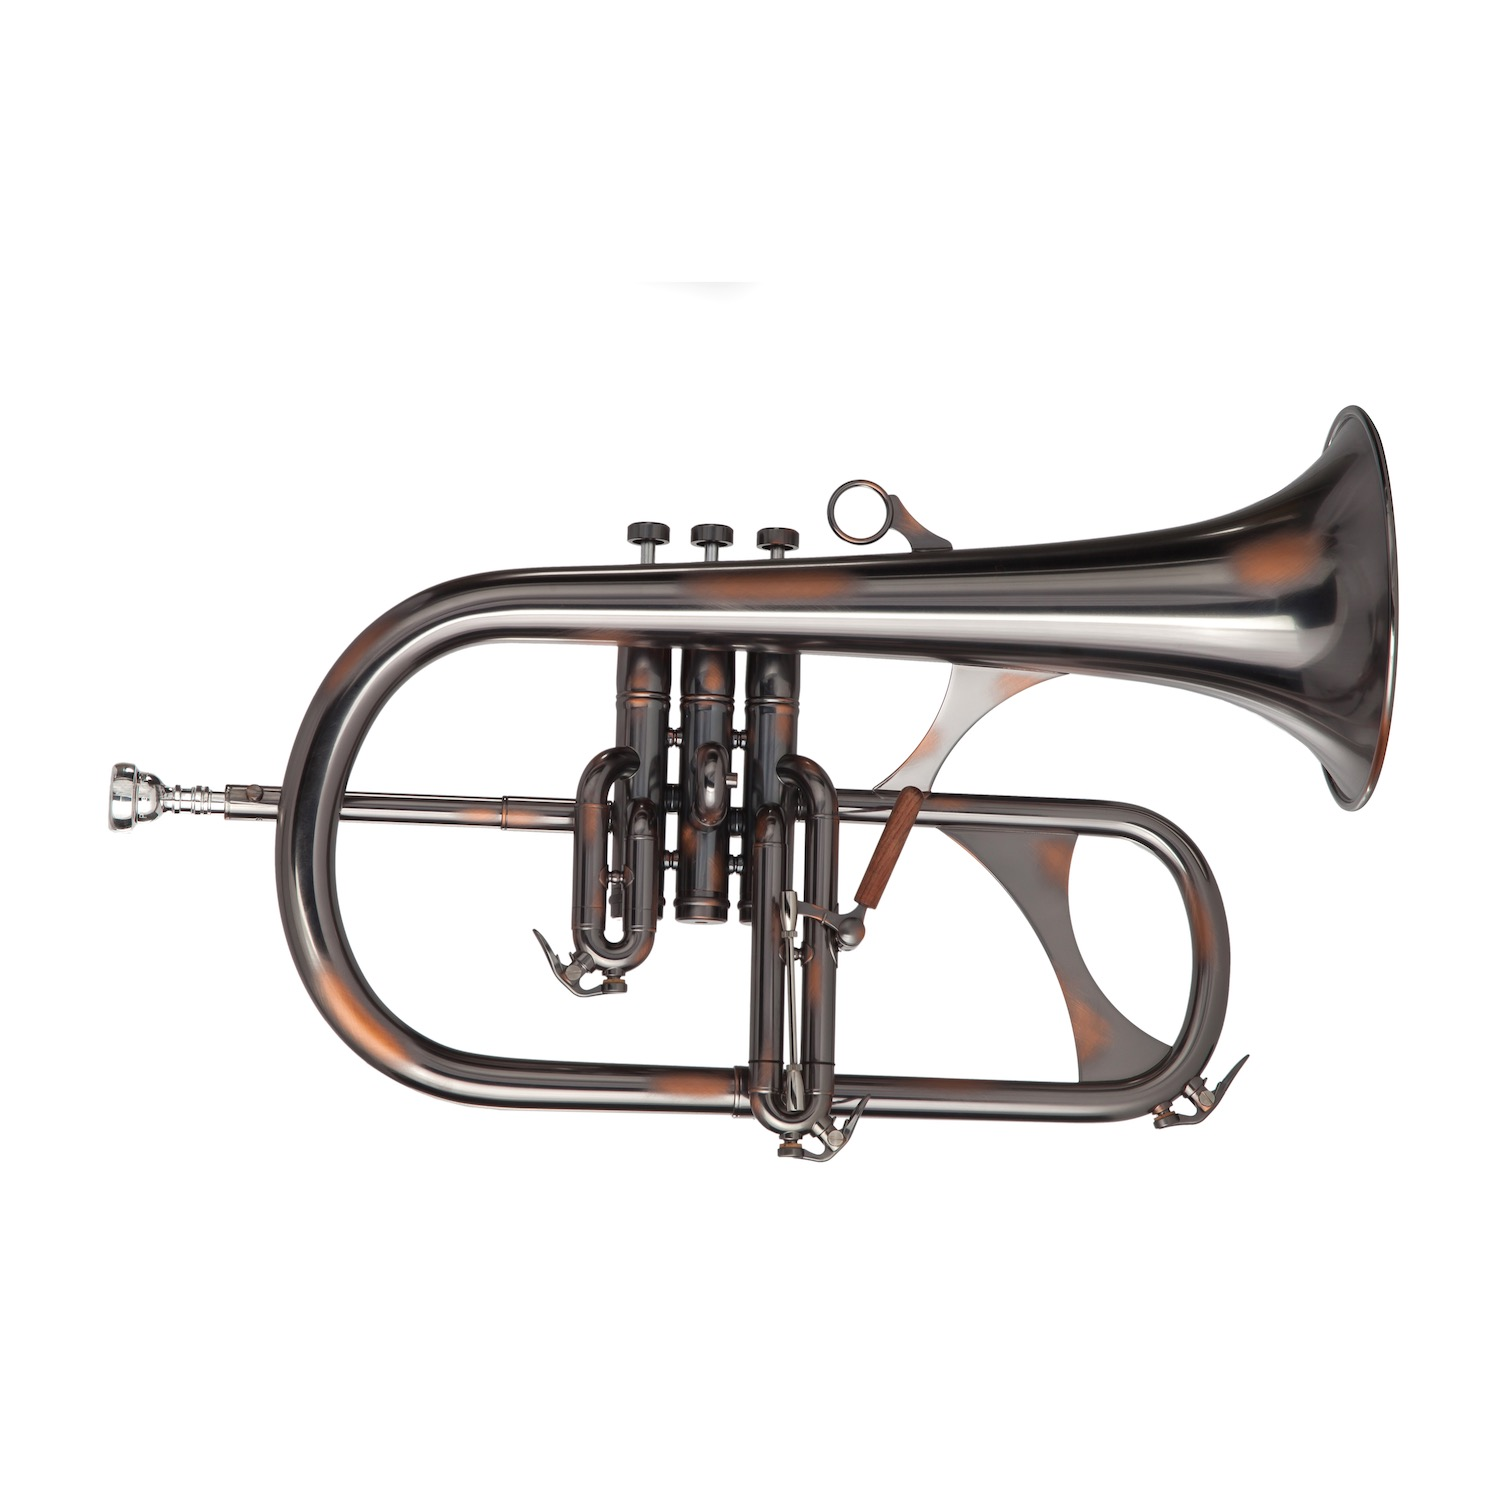 Phaeton Professional Flugelhorn - Black/Copper Antique Finish